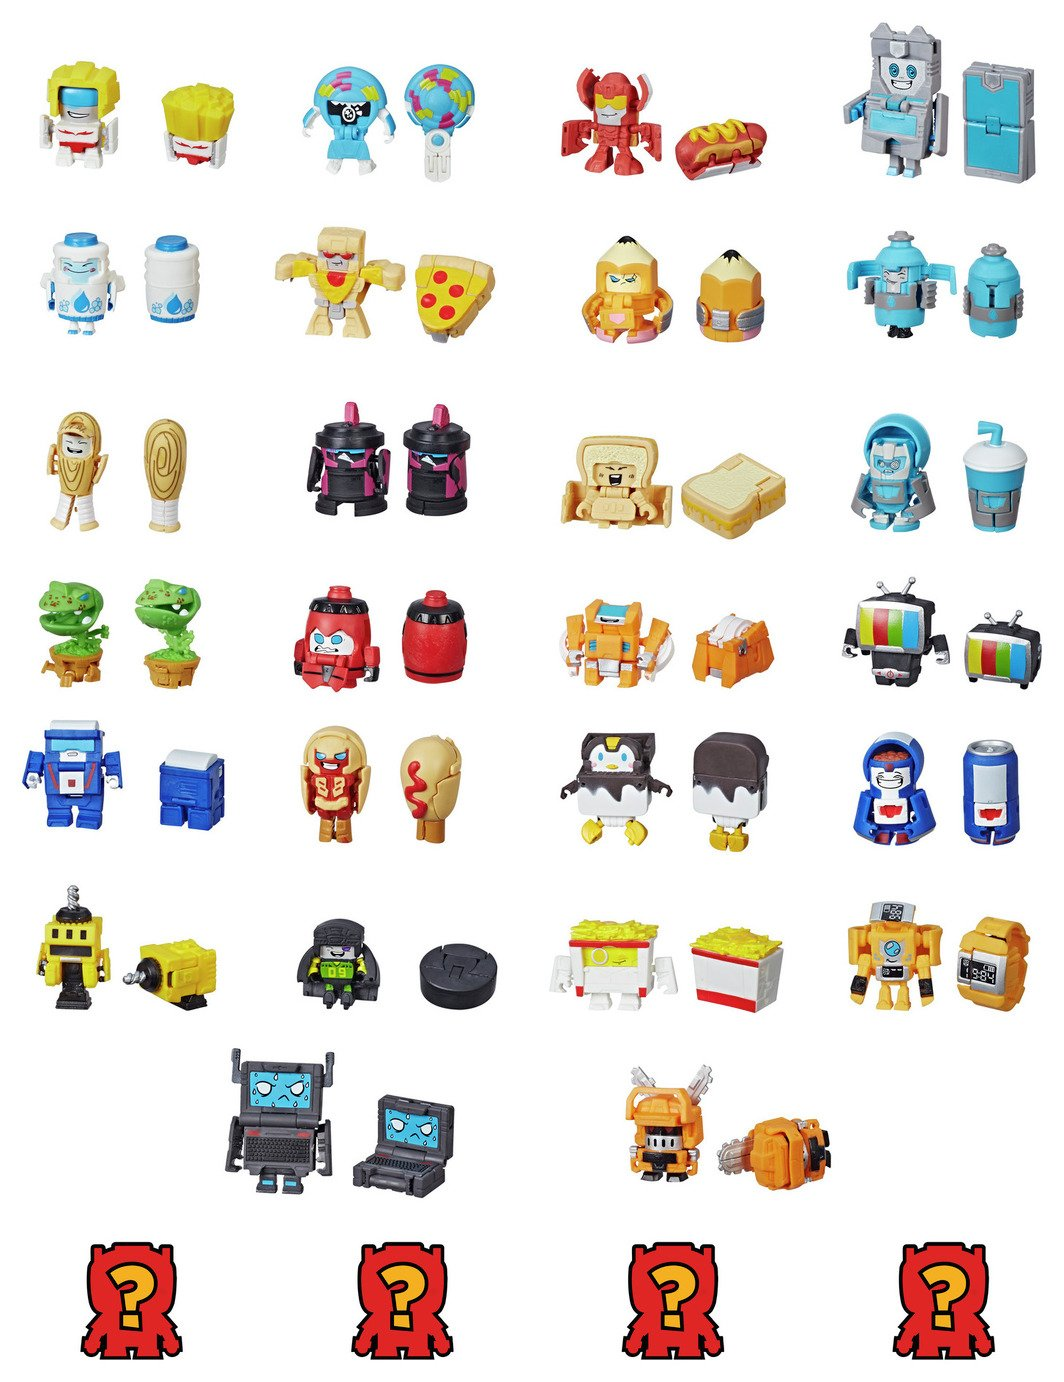 Transformers BotBots Toy 8 Pack Collectable Figures